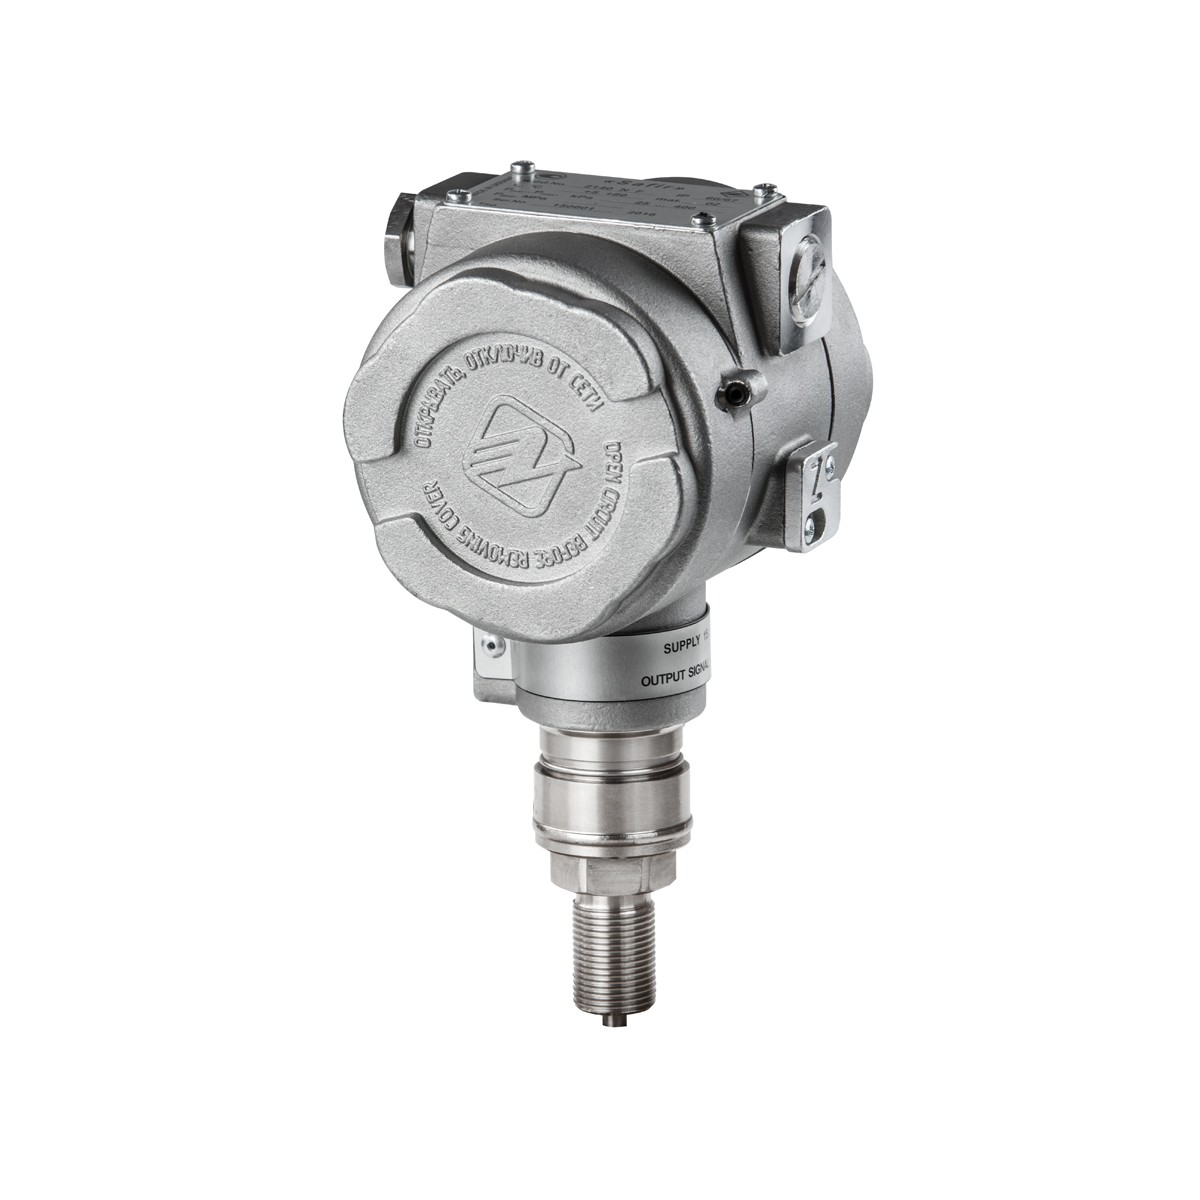 Analog LOCA Qualified Differential Pressure Transmitters Safir 5151, 5161, 5171, 5351 Ns